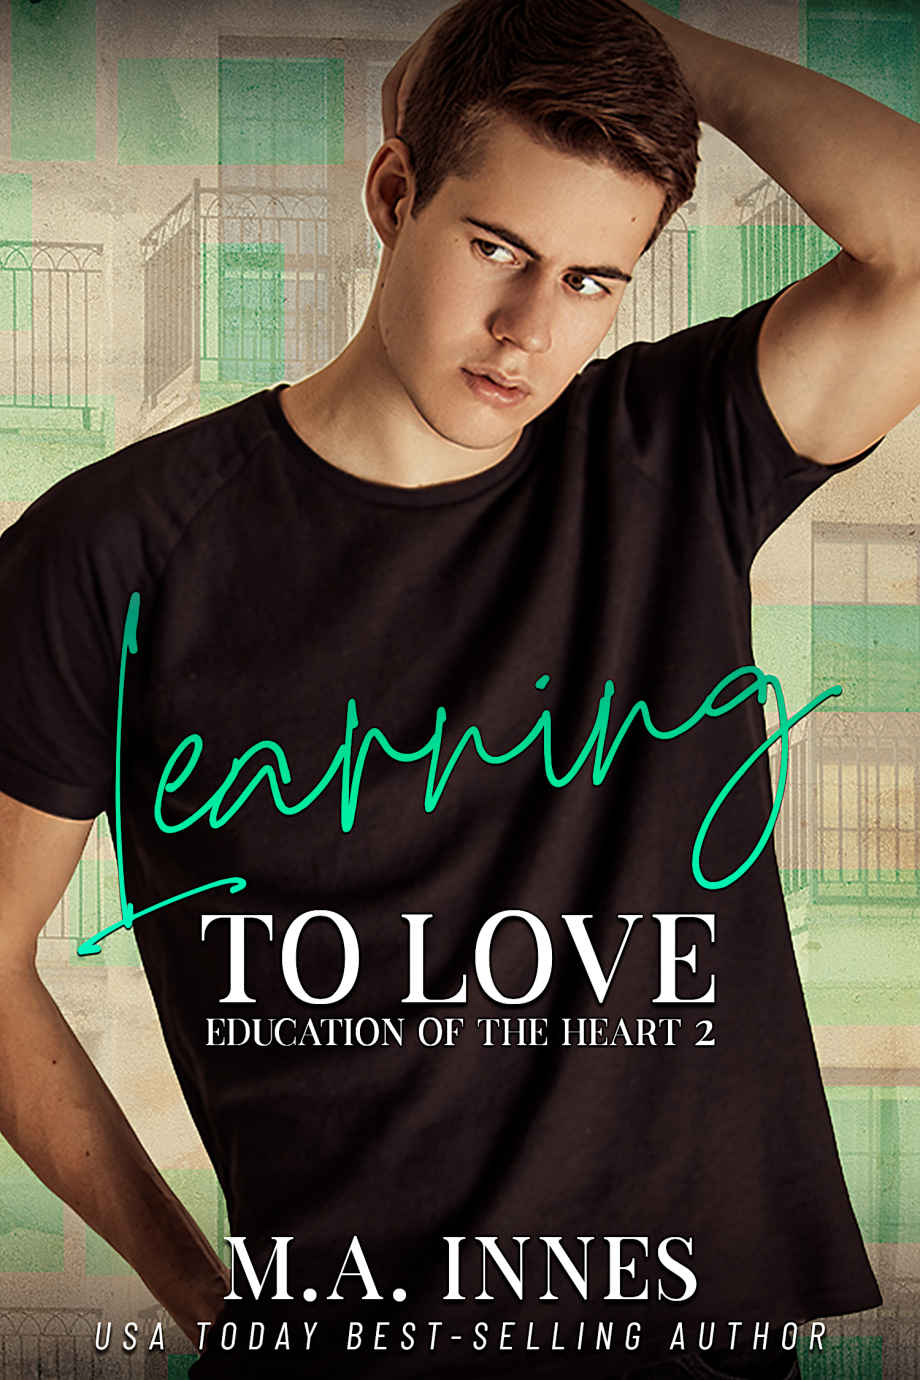 Learning to Love (The Education of the Heart #2)